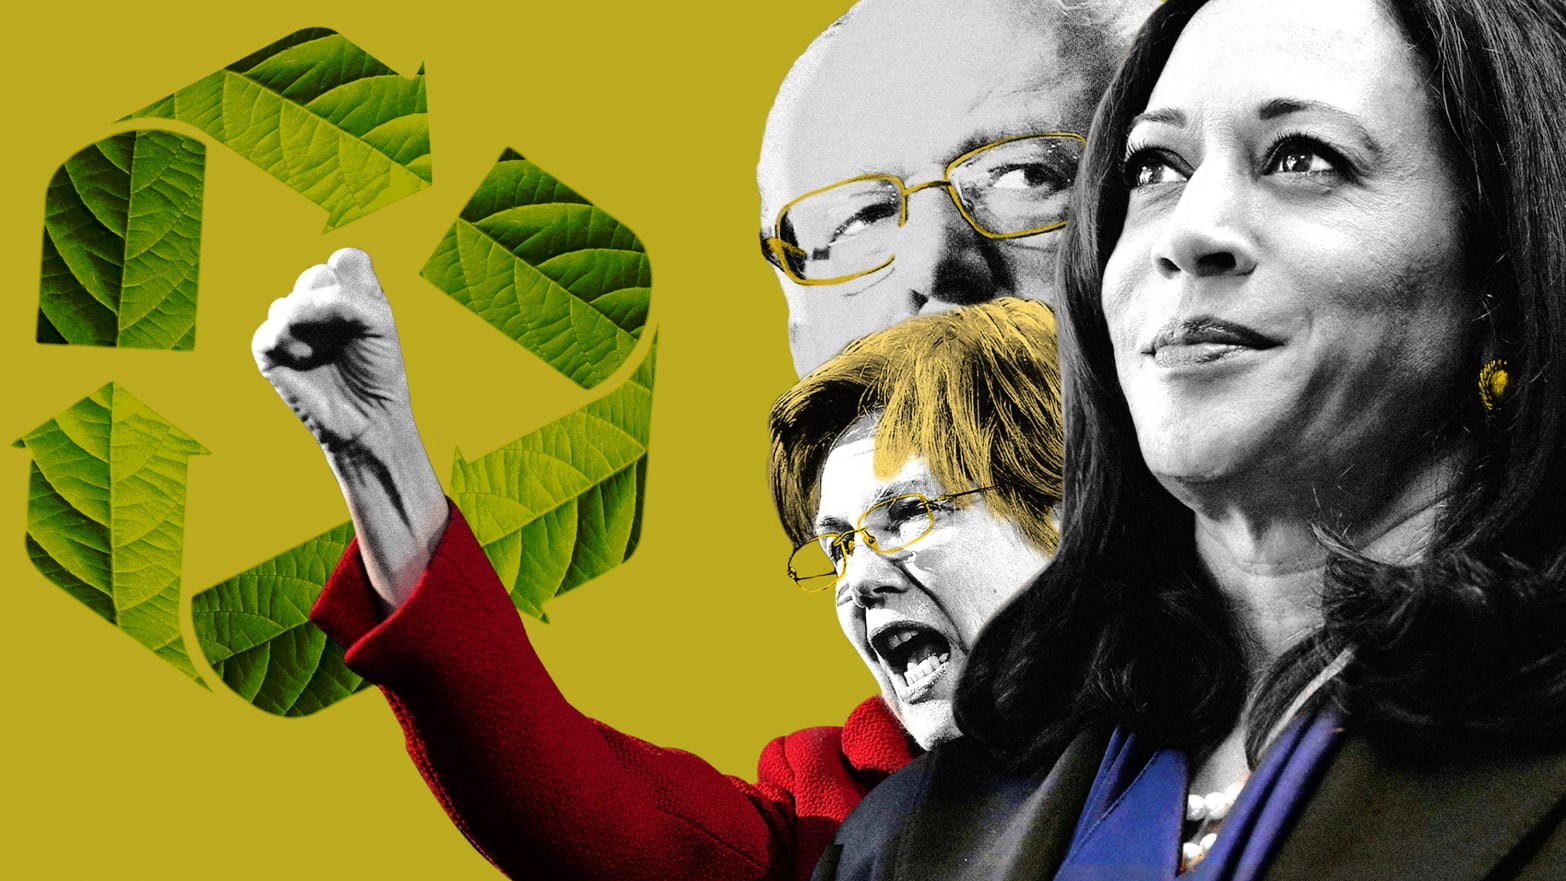 bernie sanders kamala harris elizabeth warren on yellow background with recycling sign climate change jay inslee kirstin gillibrant 2020 election democrat julian castro republican donald trump alexandria ocasio cortez green new deal environment